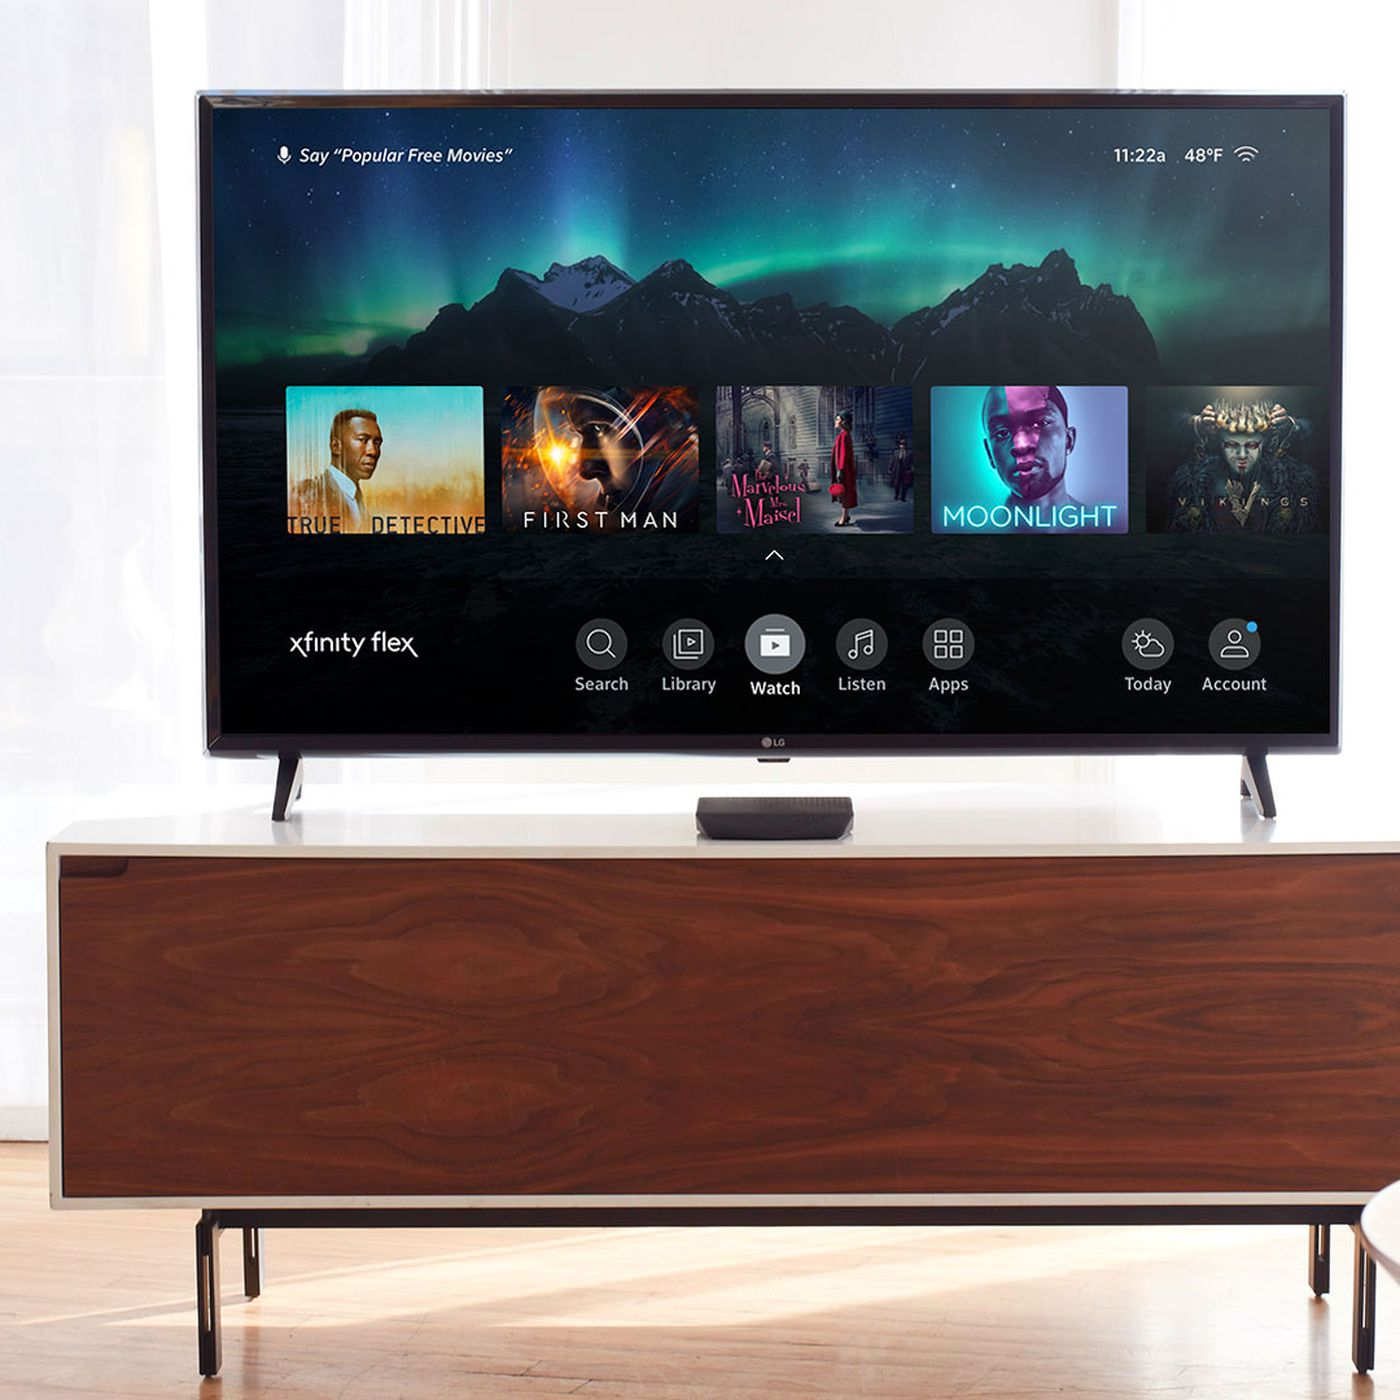 Comcast announces $5-per-month Flex streaming platform for